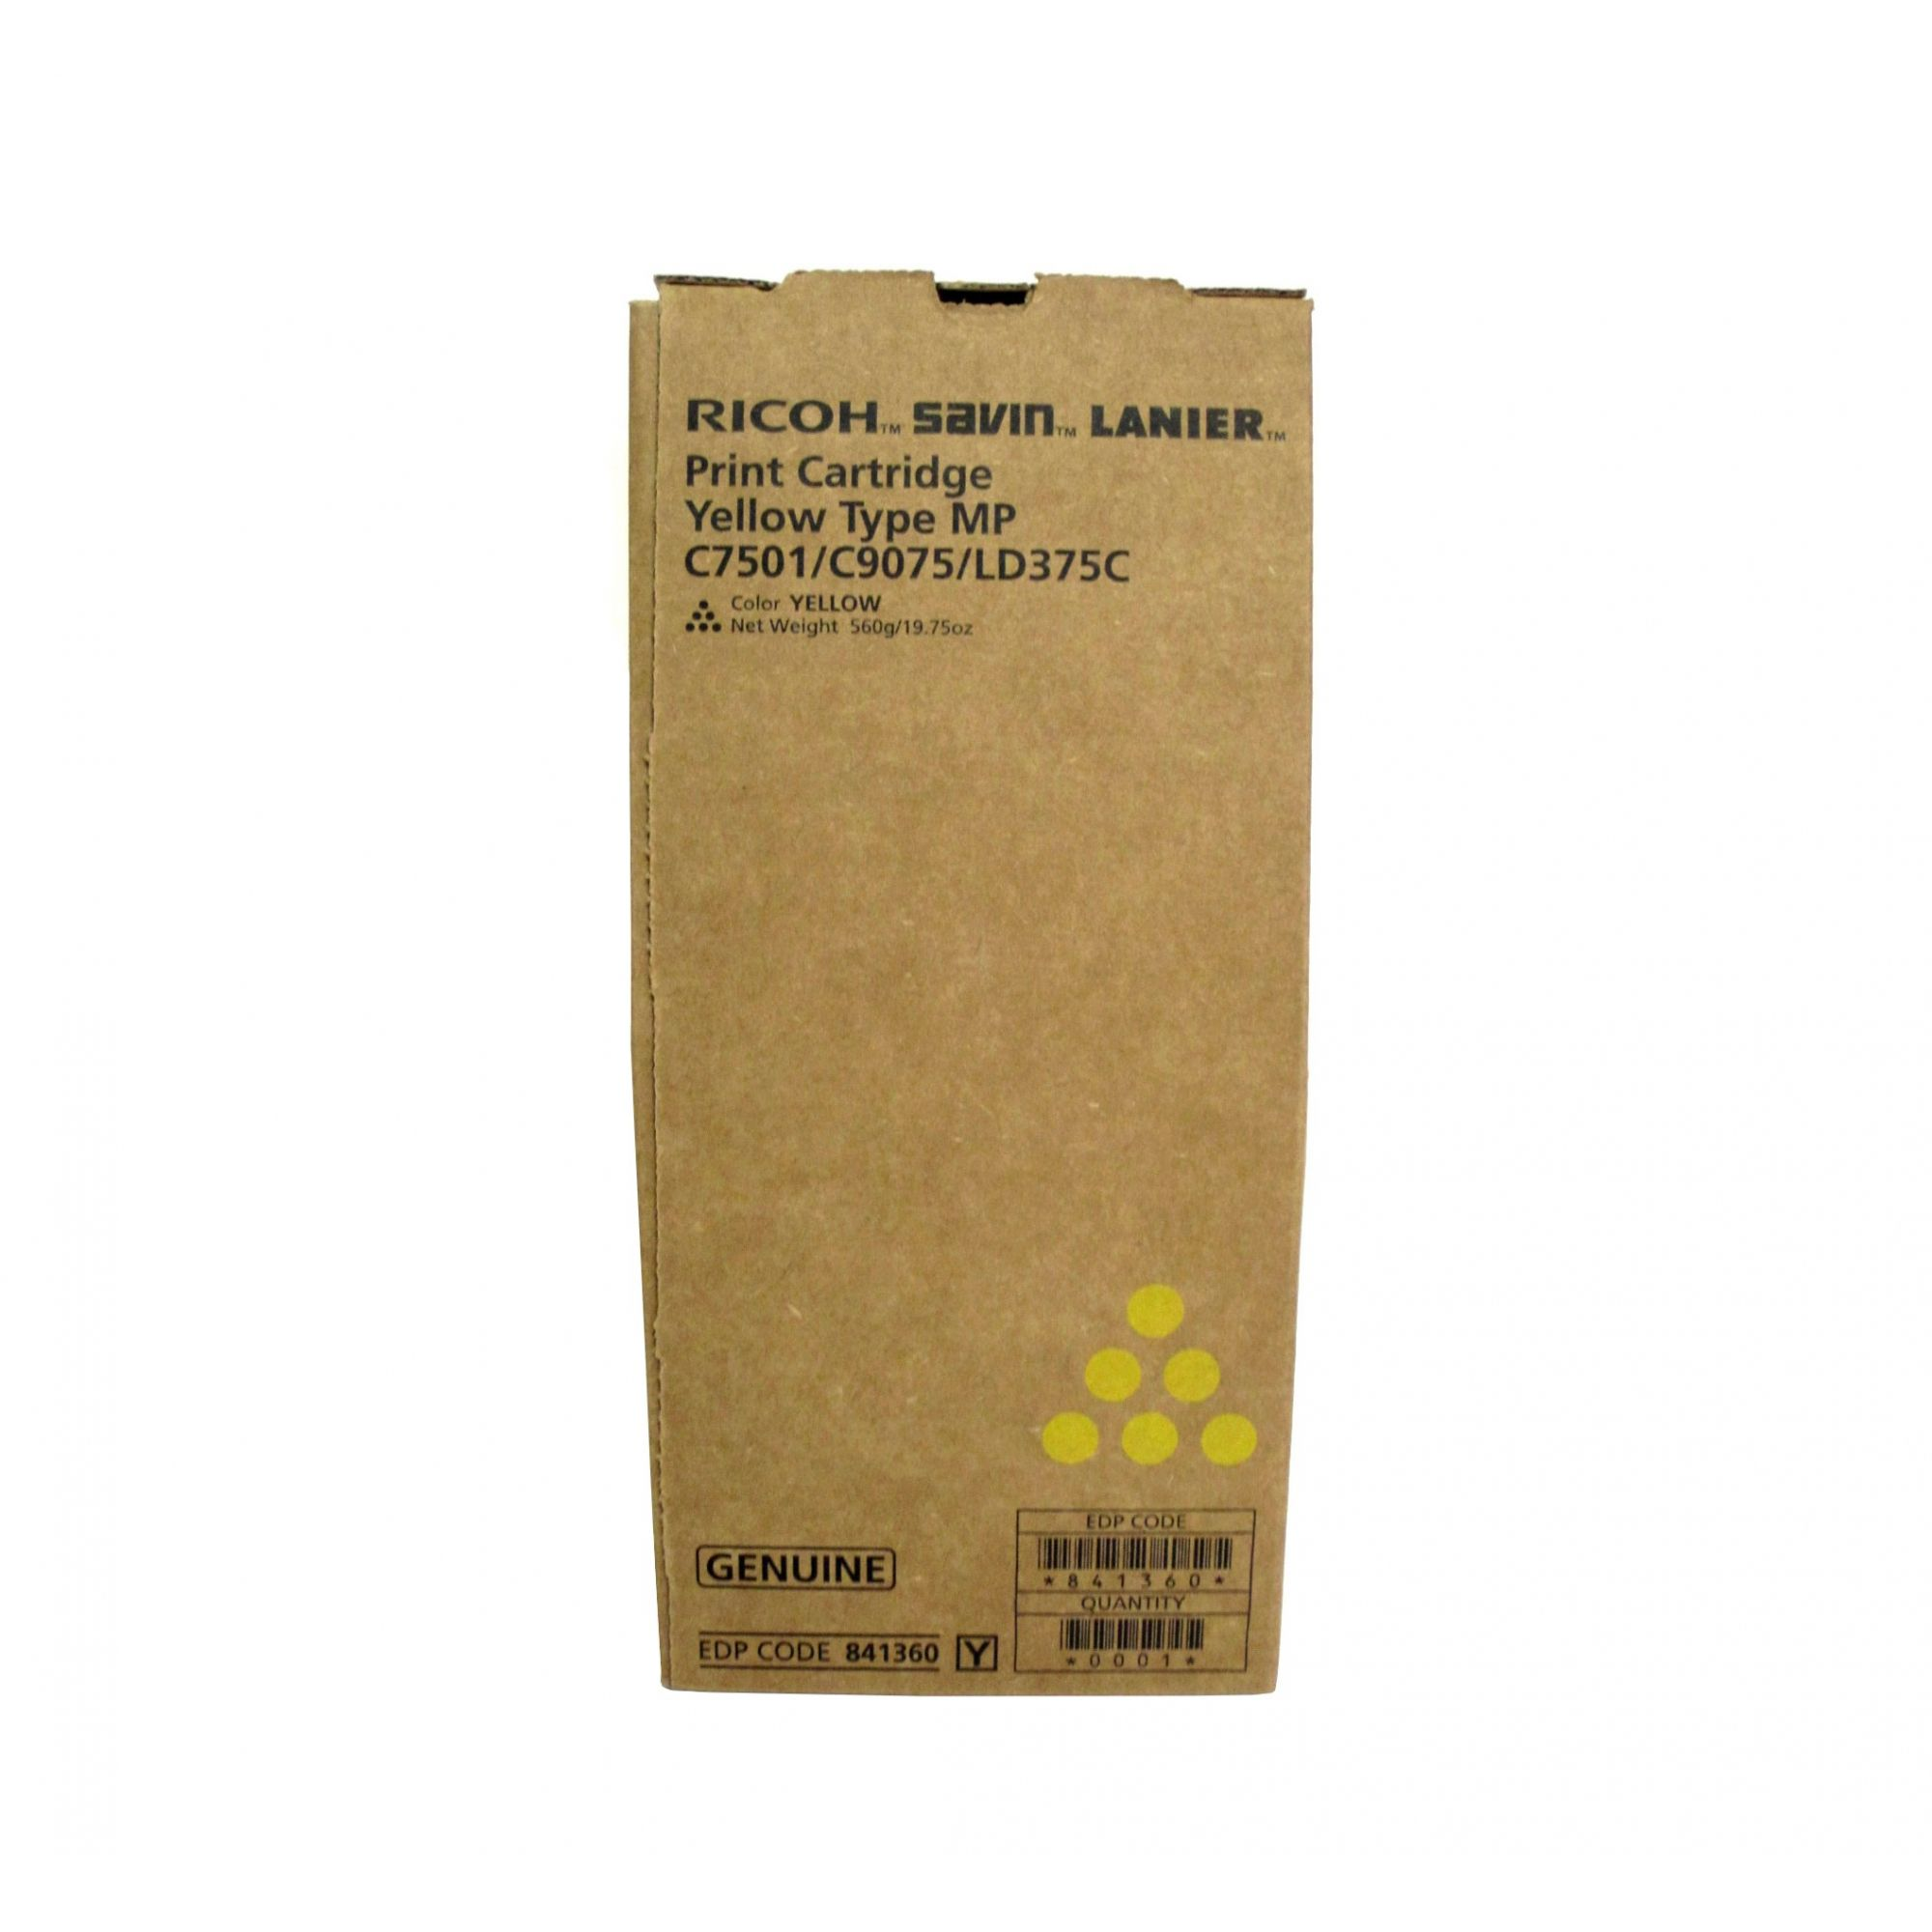 Toner Ricoh MPC 6501|Ricoh MPC 7501 - Yellow - Original - 841360